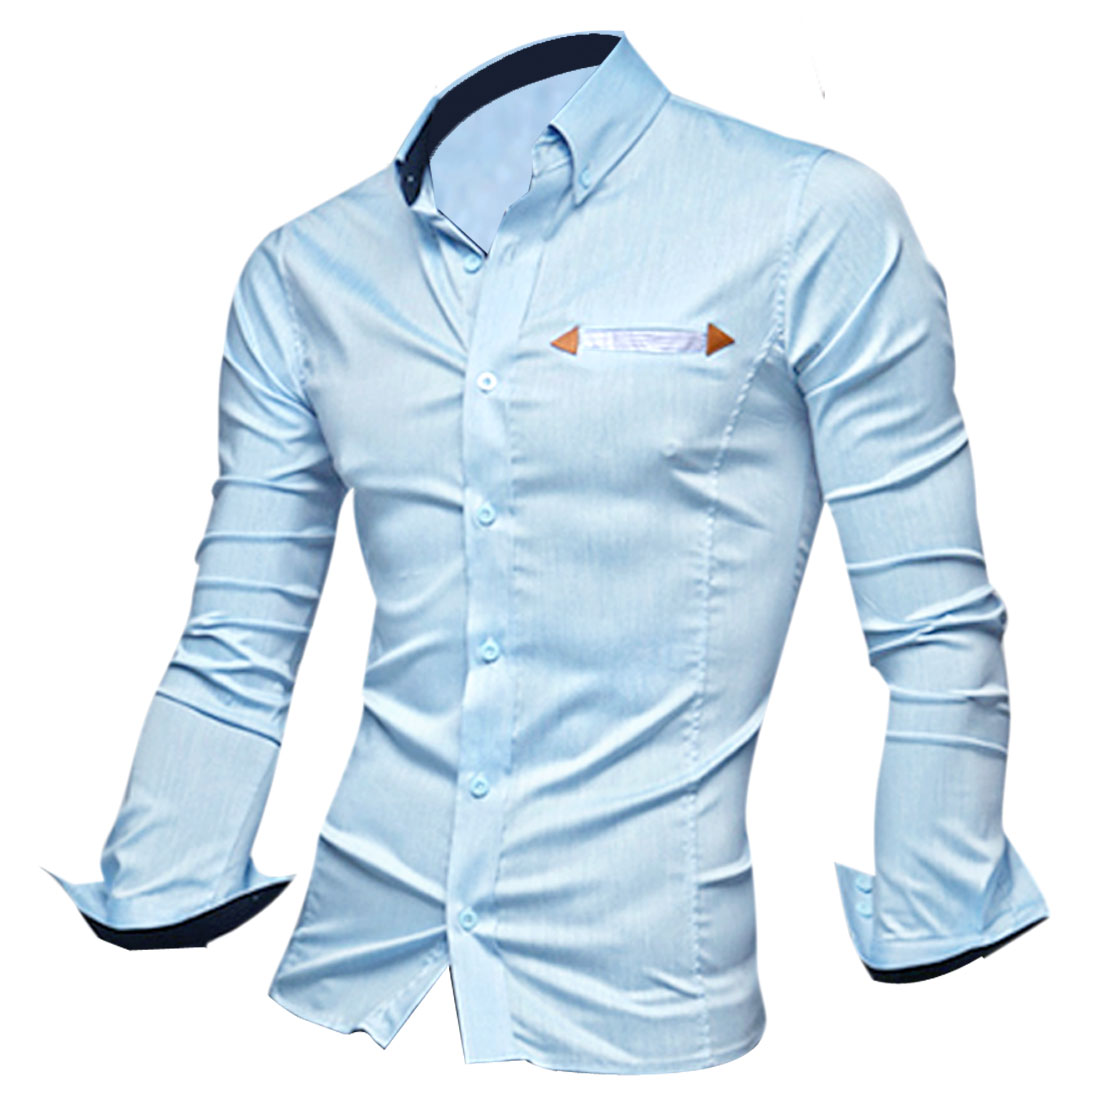 Men M Light Blue Point Collar Long Sleeve Skinny Fit Fashionable Shirt